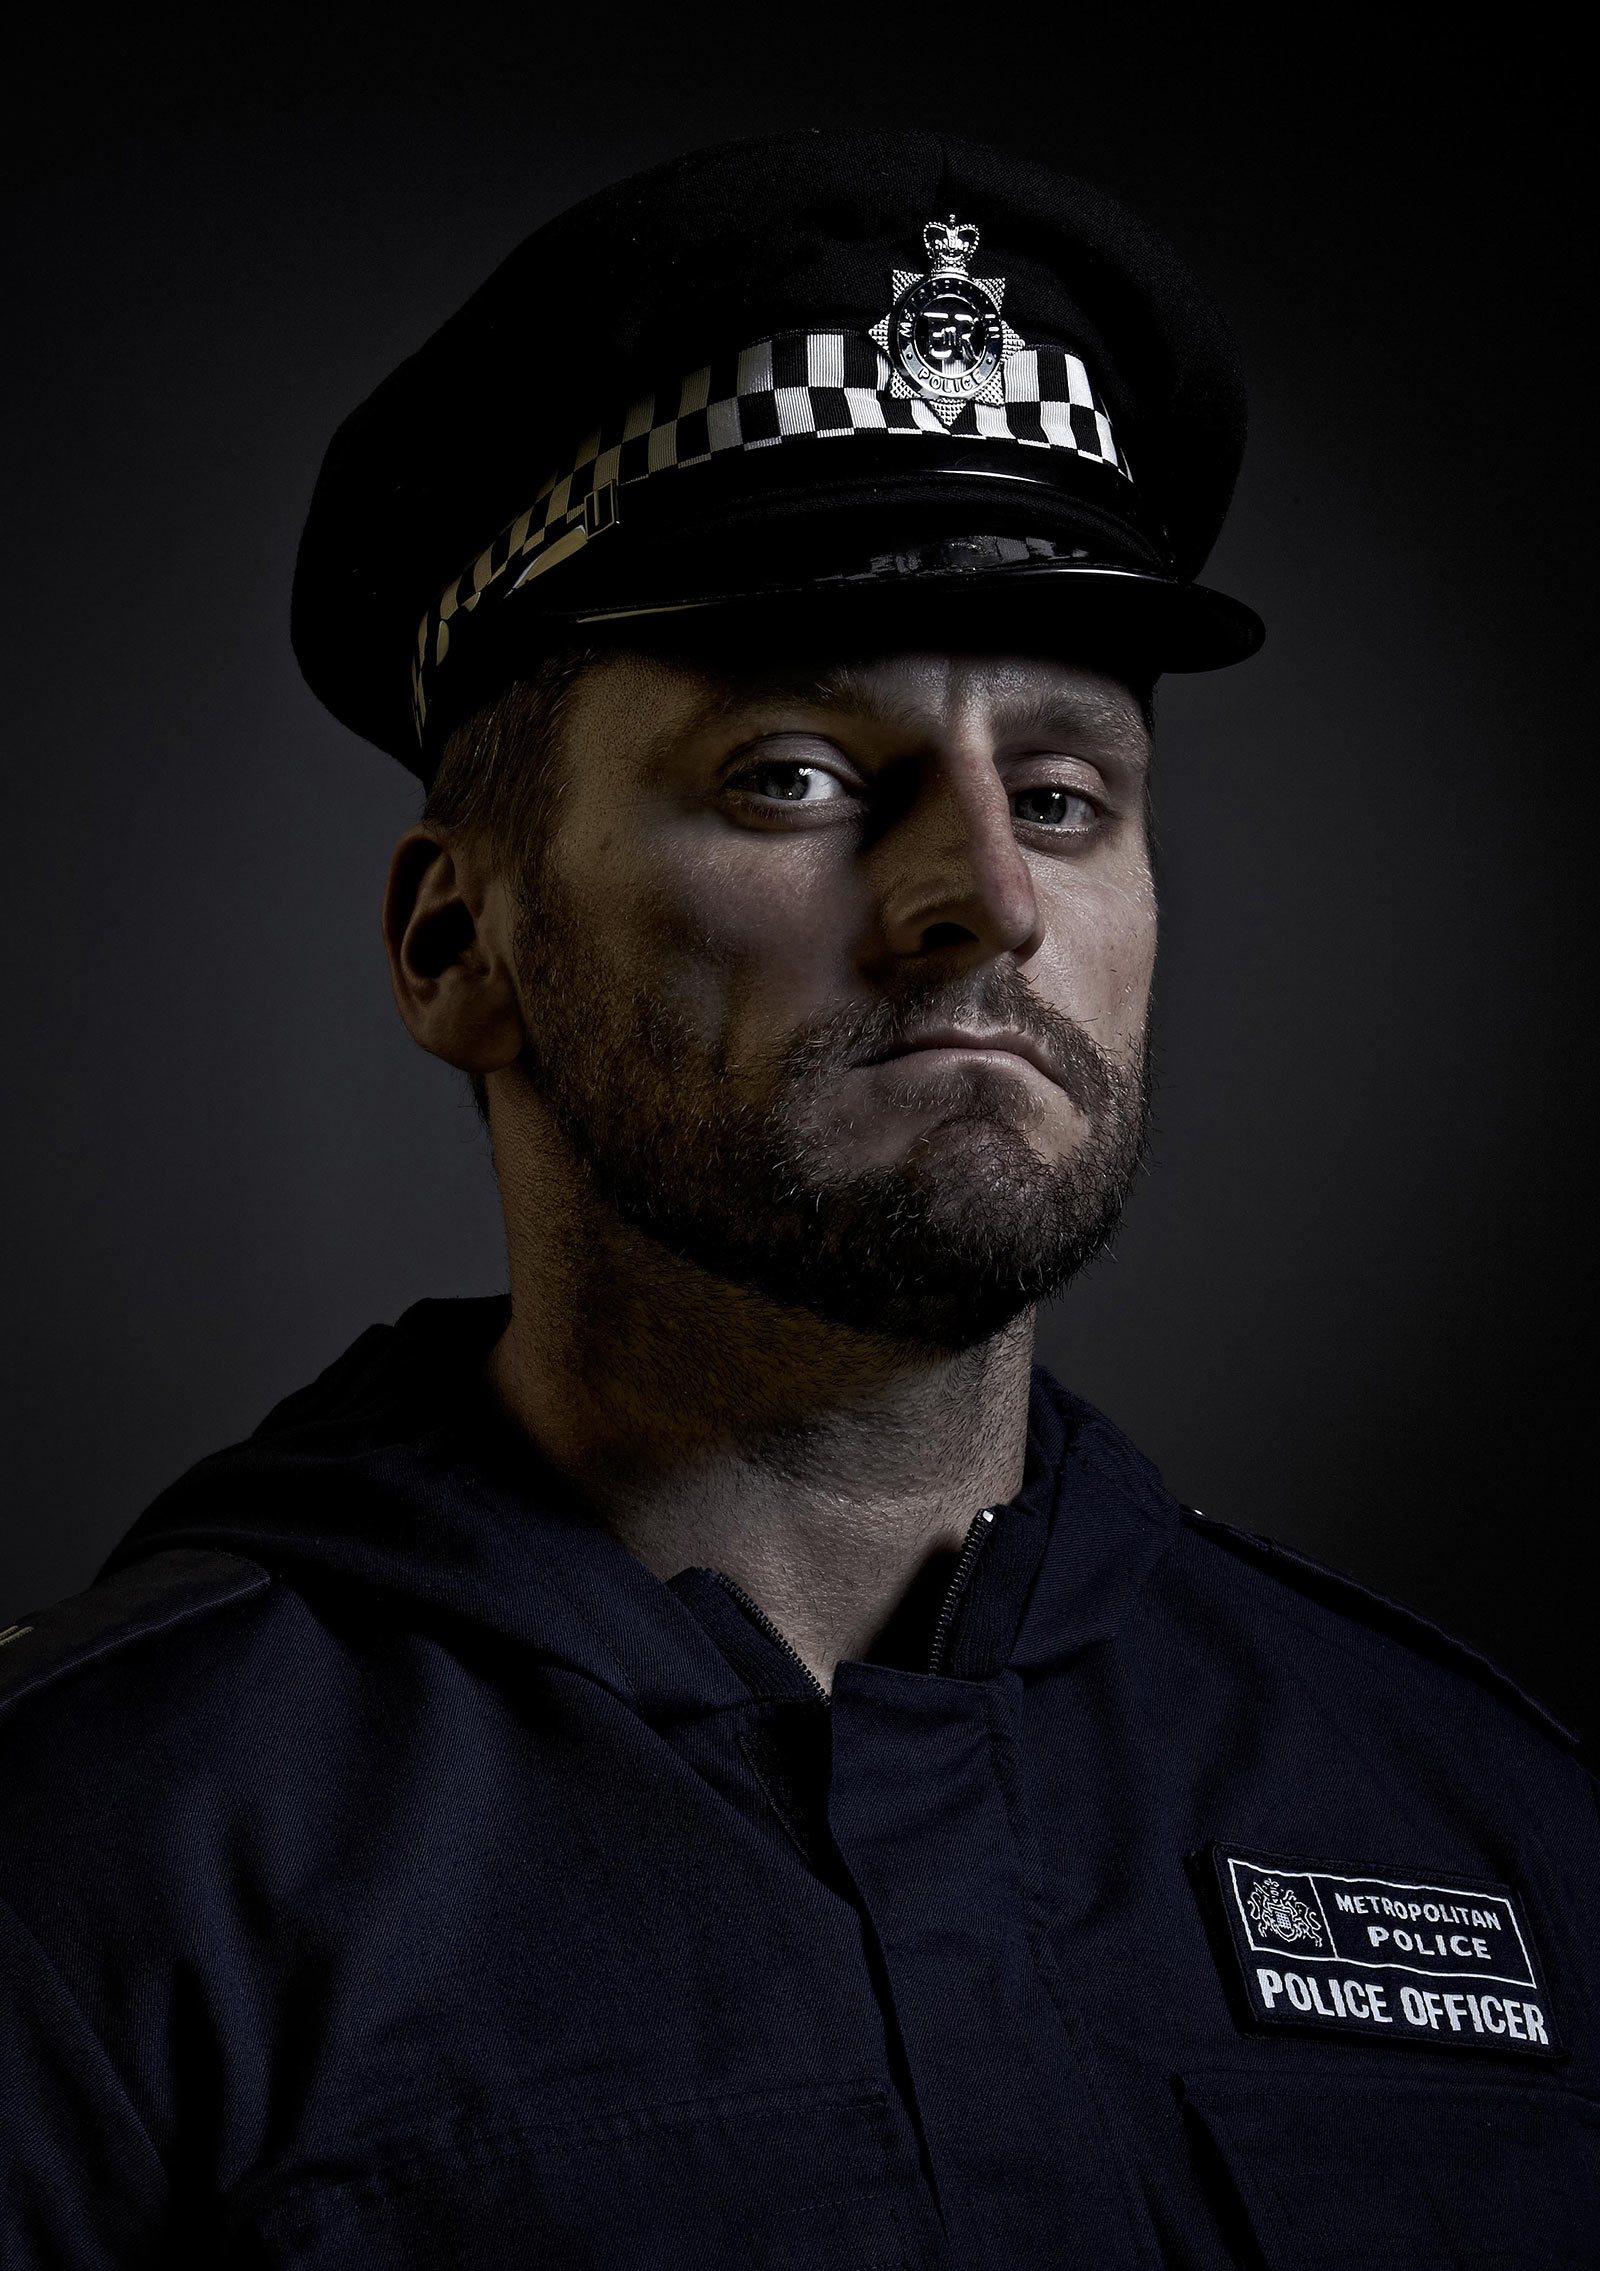 London Metropolitan Police Officer